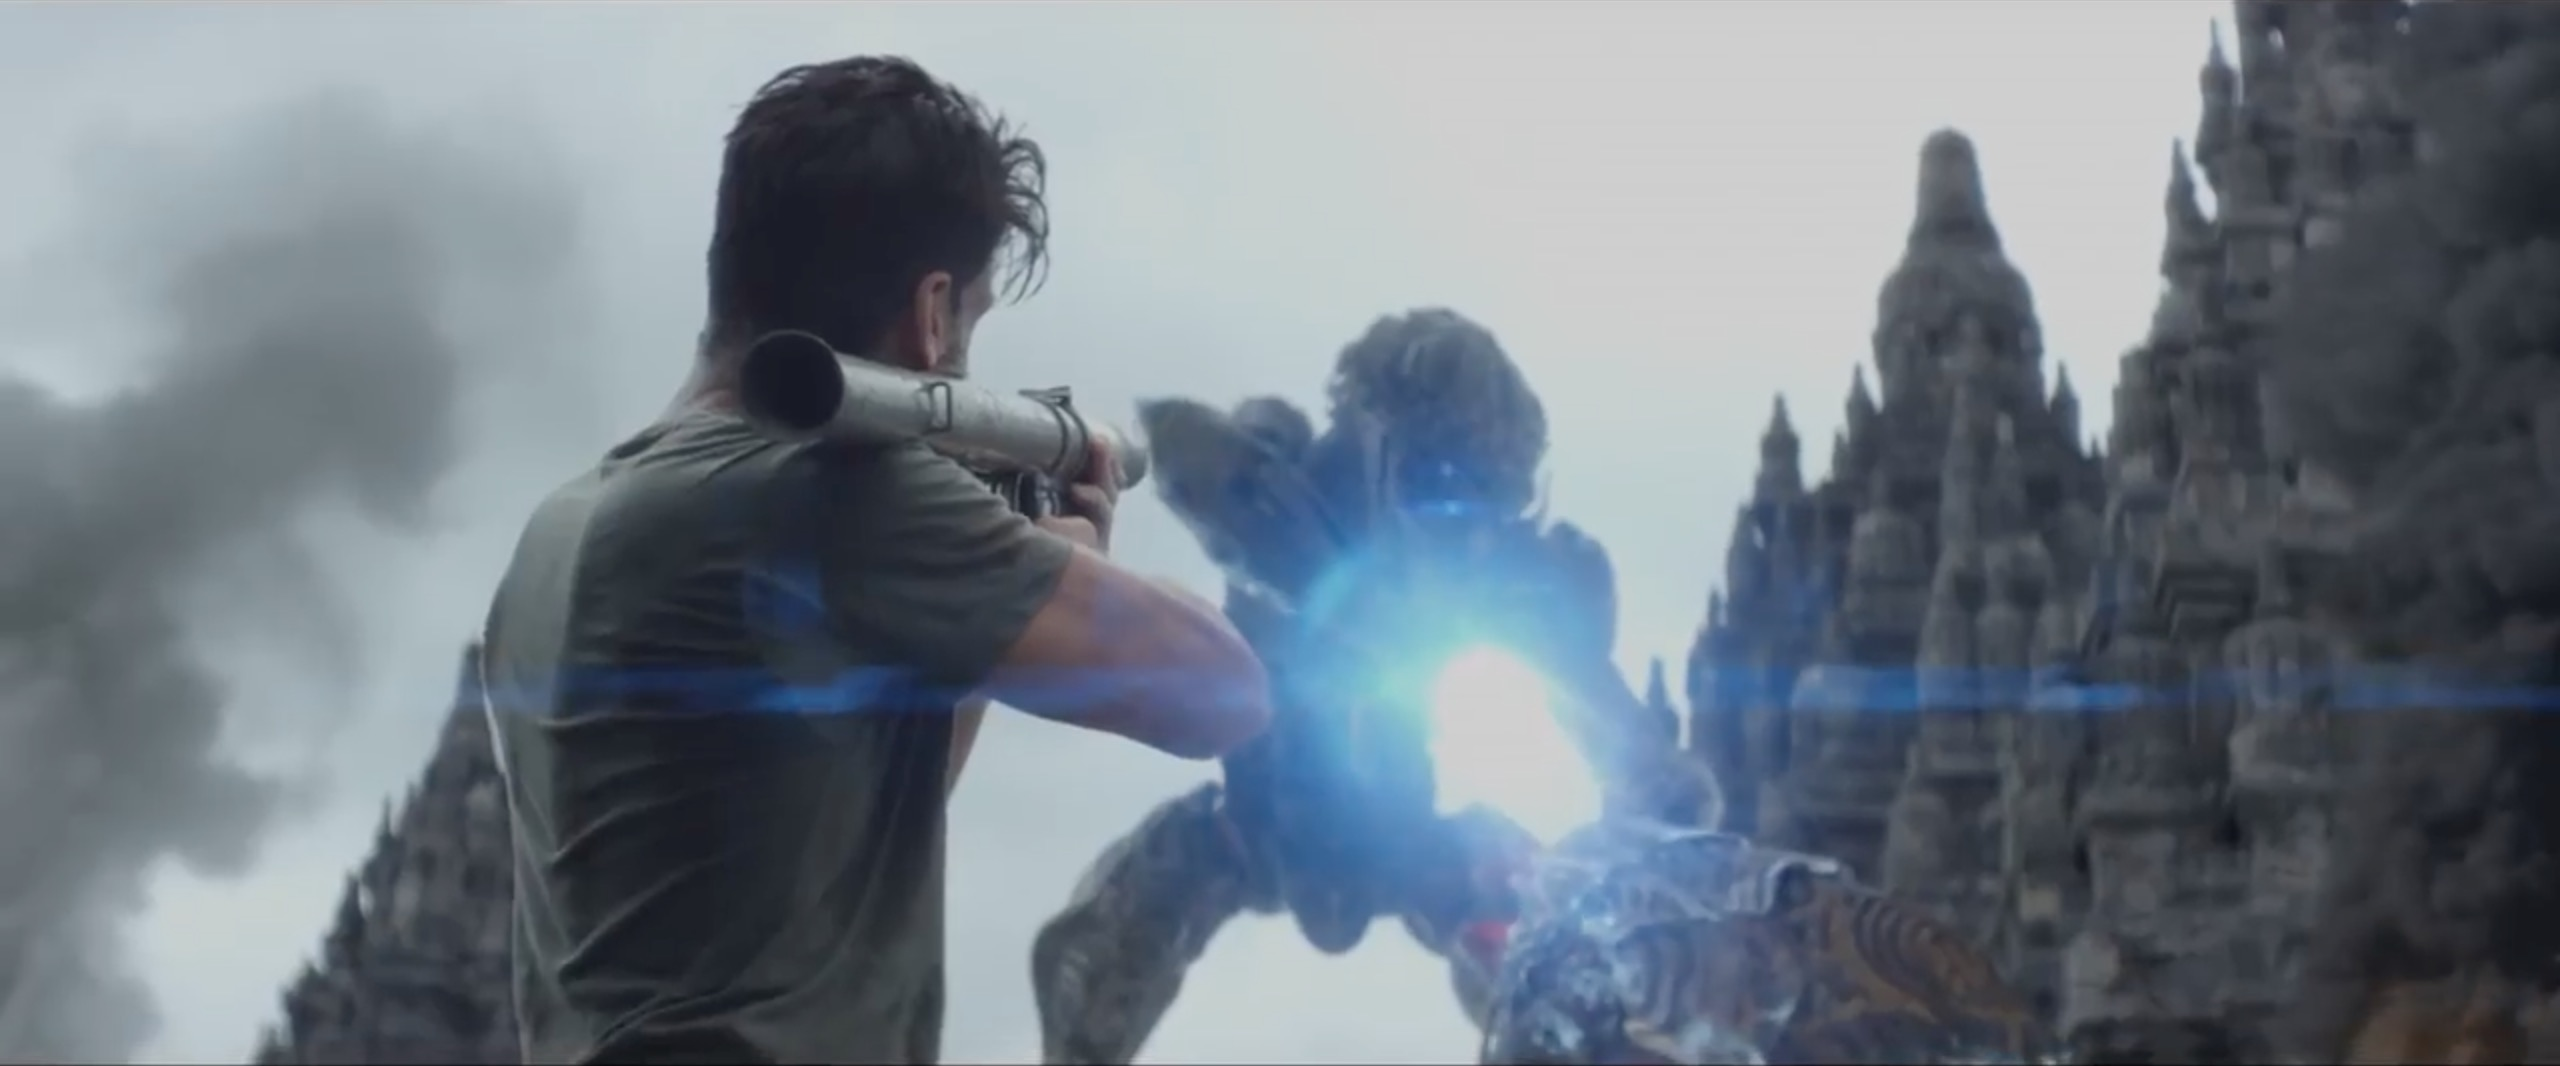 Beyond Skyline Trailer: This Doesn't Look Terrible?